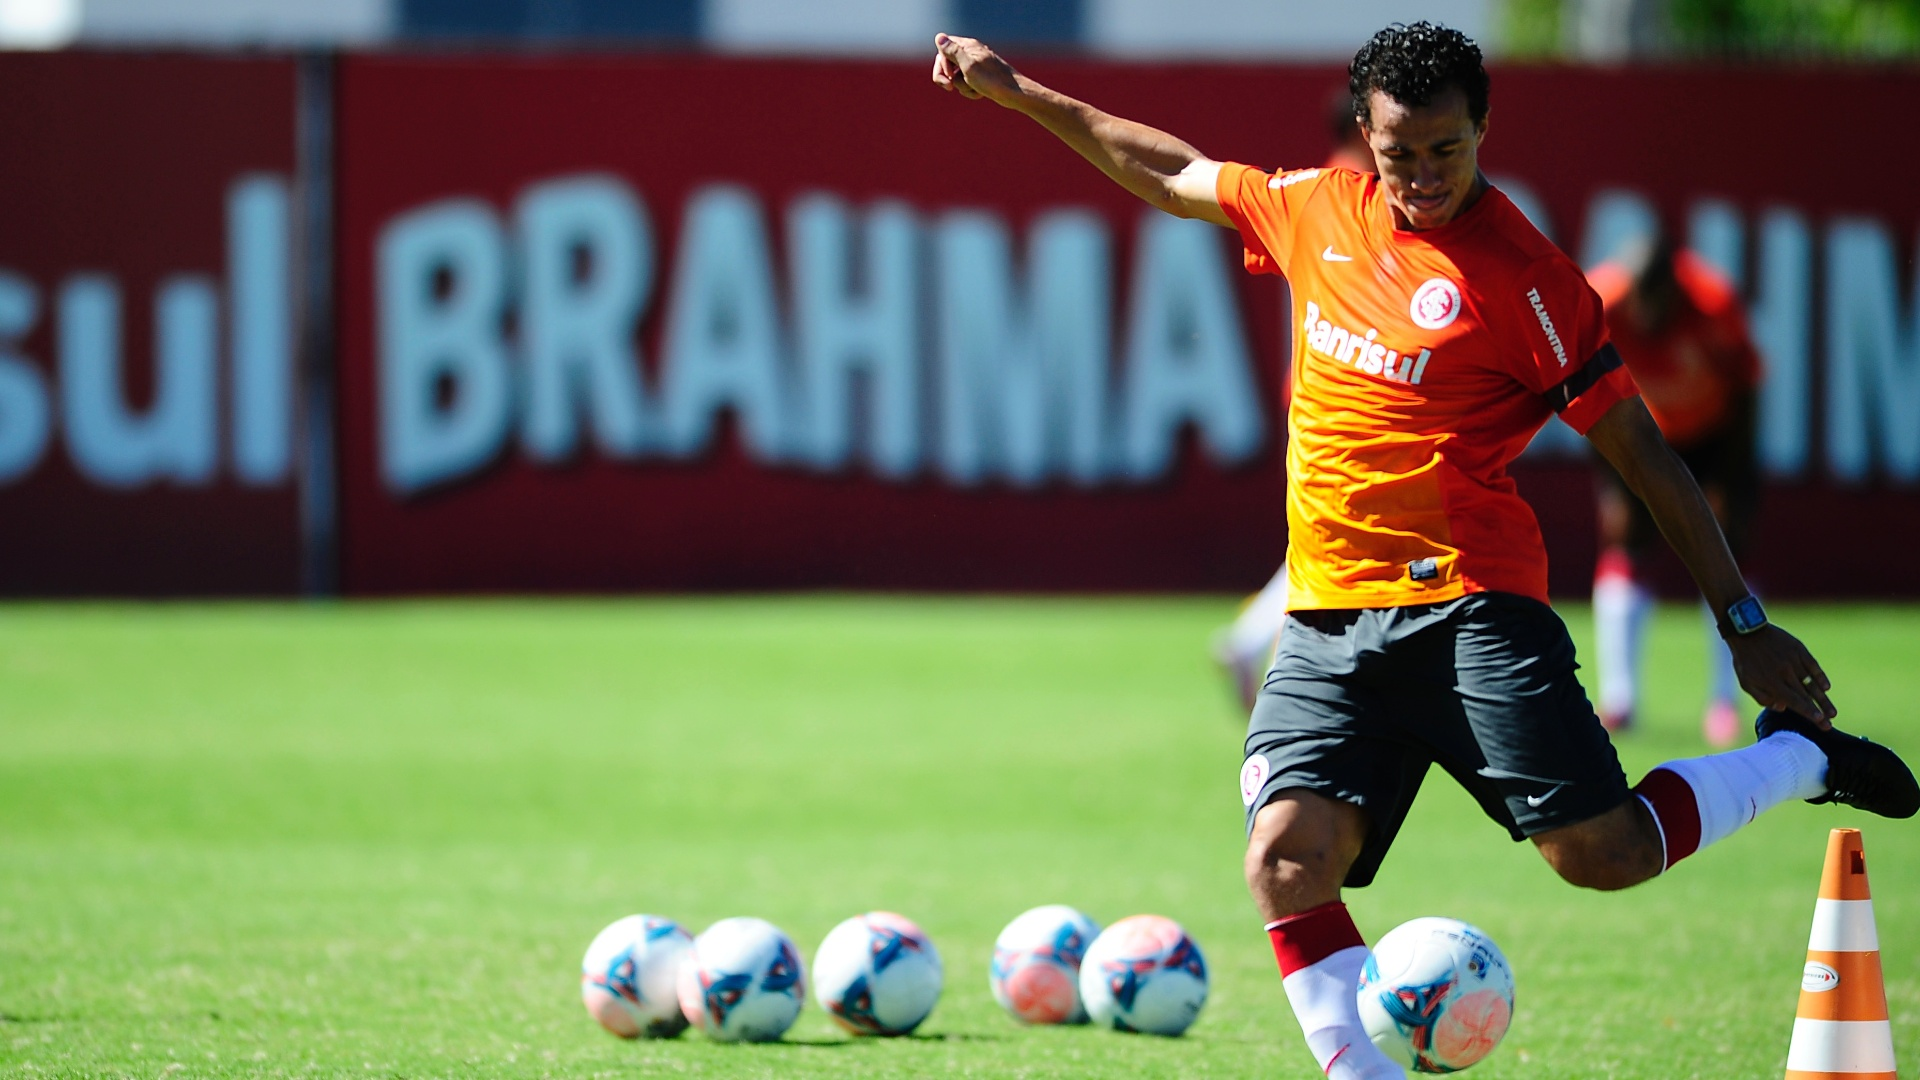 Centroavante Leandro Damião em treino do Inter no CT do Parque Gigante (27/02/2013)